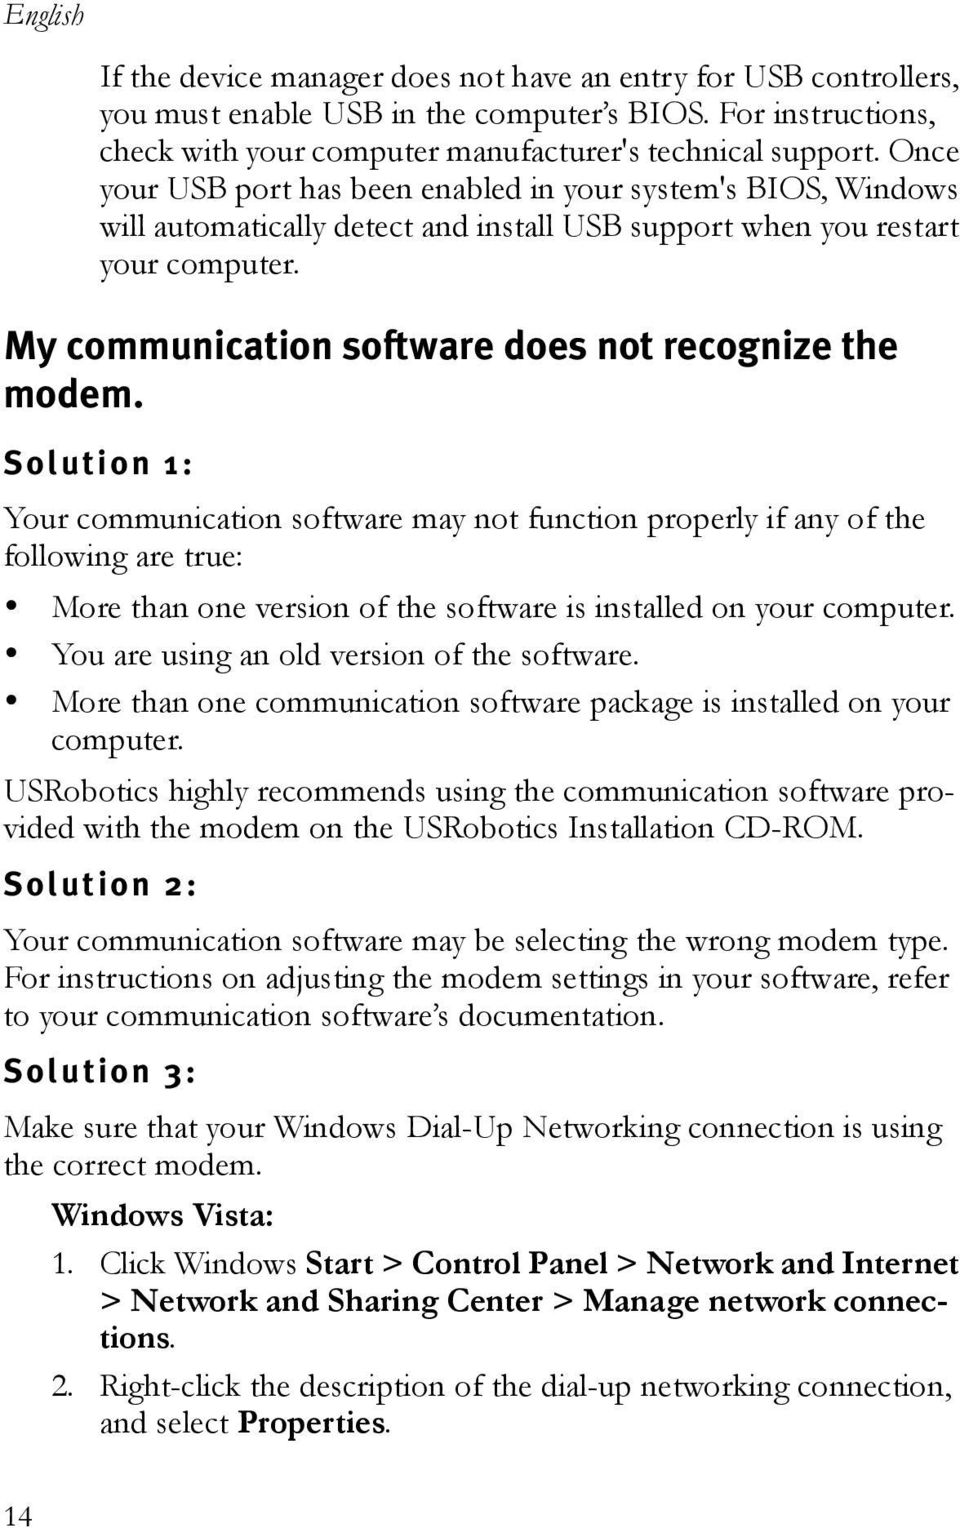 My communication software does not recognize the modem. Solution 1: Your communication software may not function properly if any of the following are true:!